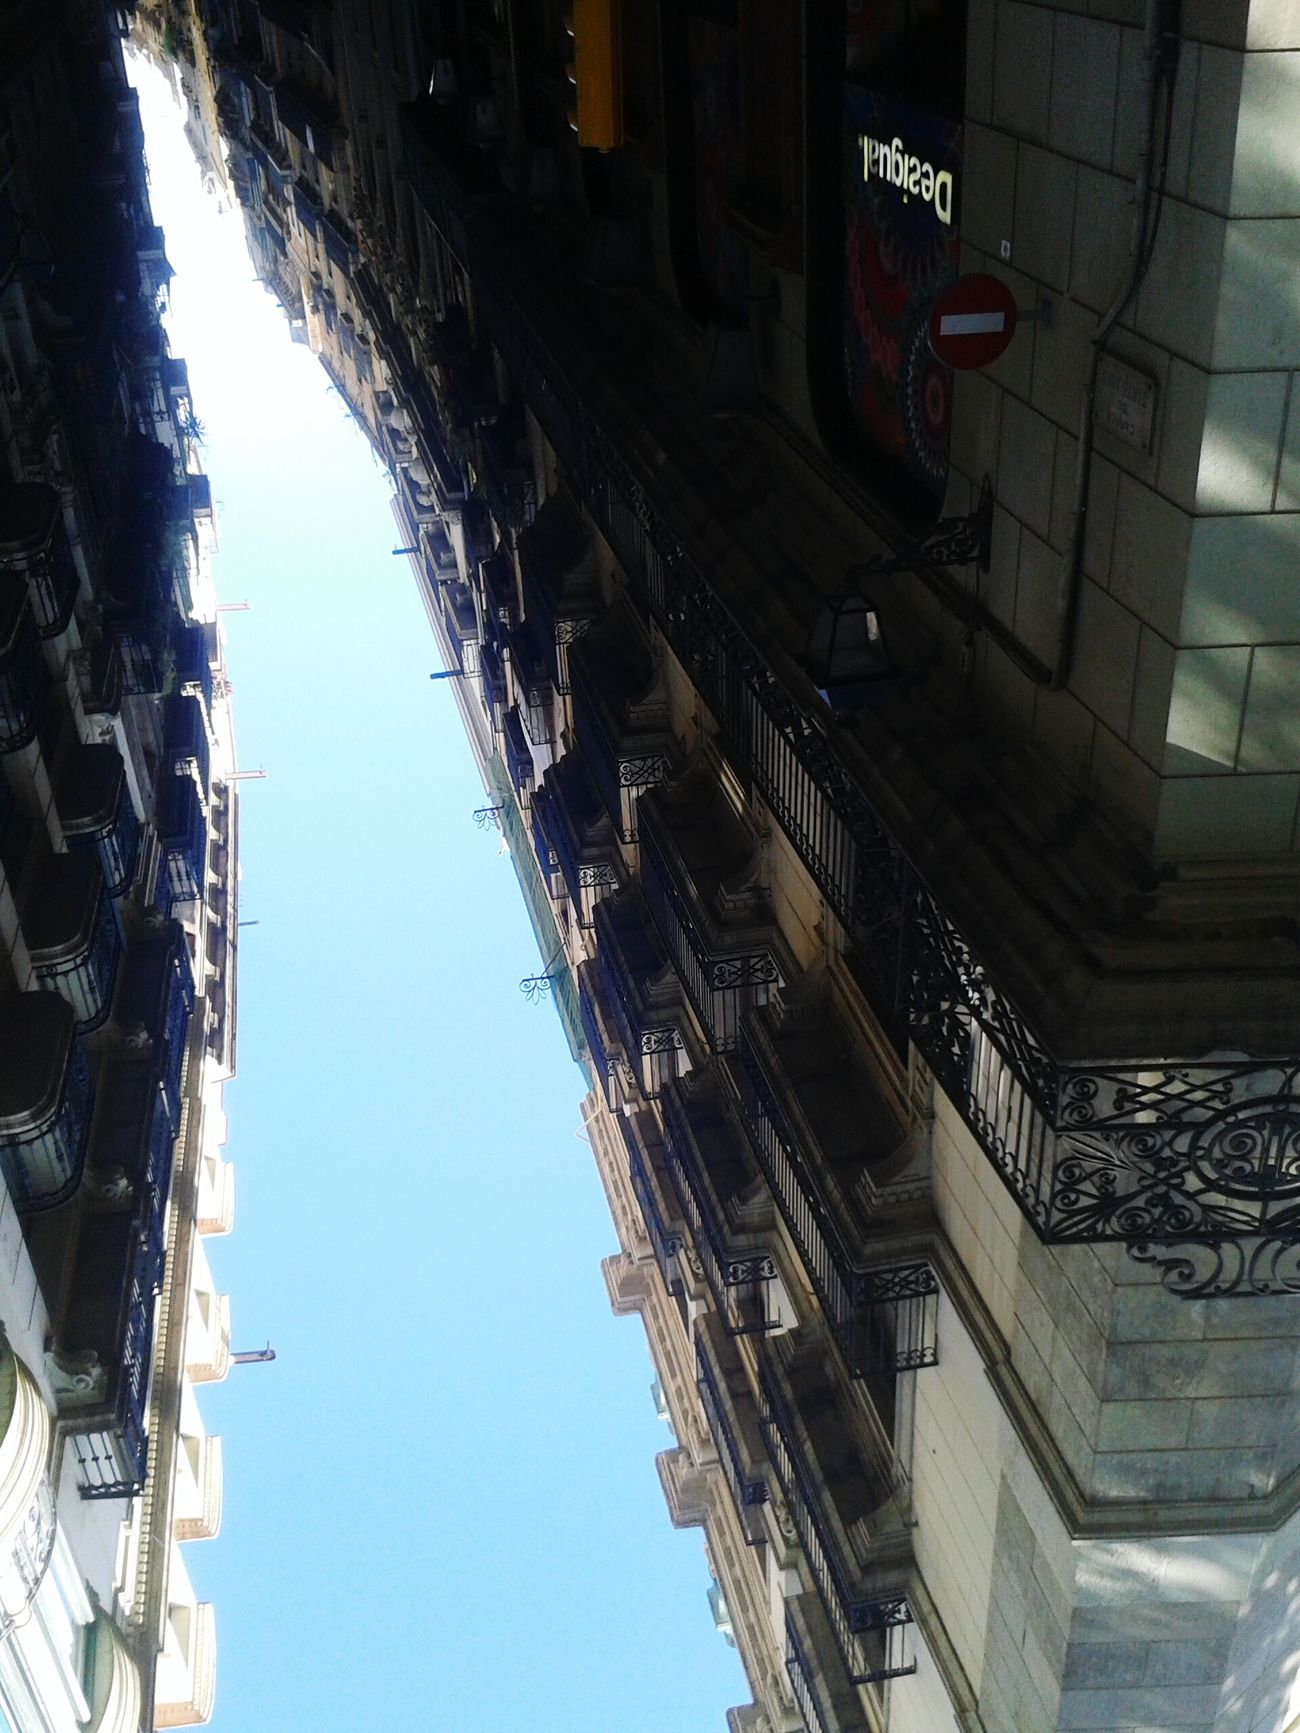 TakeoverContrast Architecture City Life Old Town Clear Sky Barcelona Streets